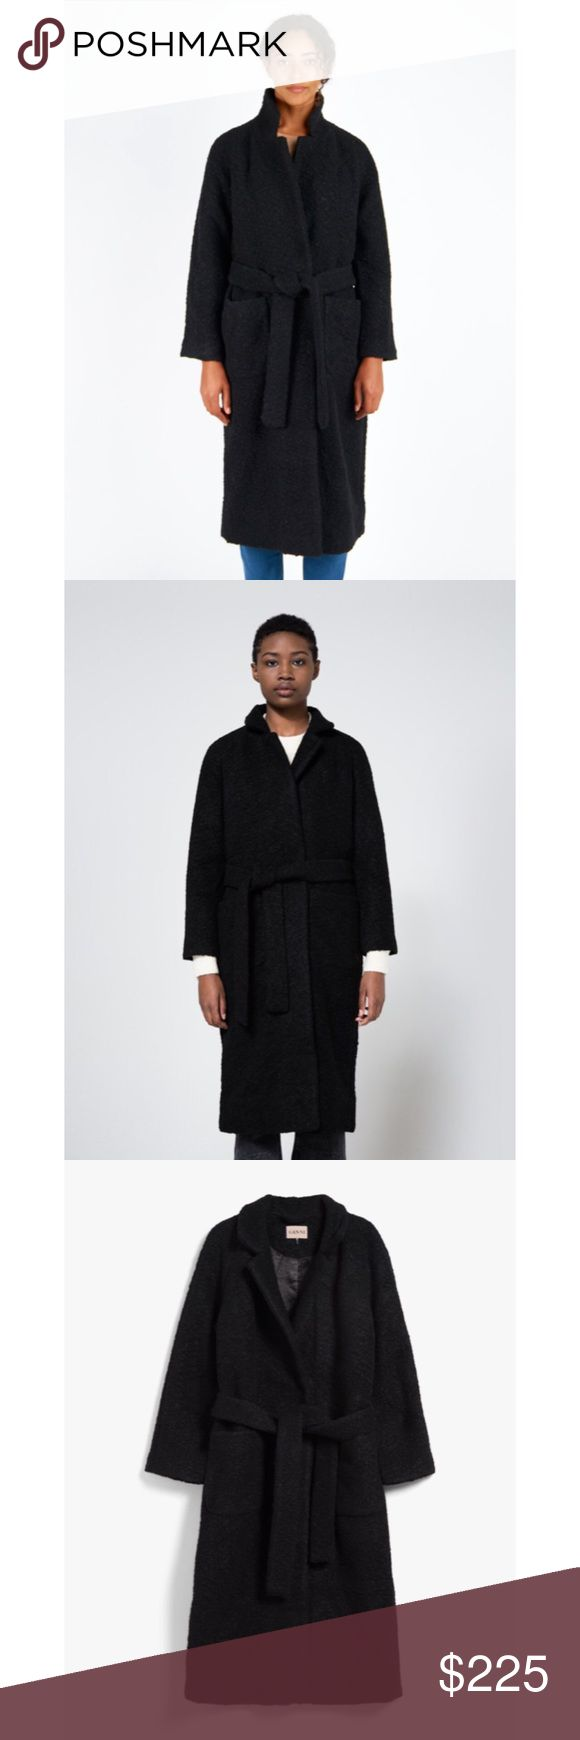 Ganni teddy fenn wrap long coat in black. Ganni teddy fenn wrap long coat in black. It is a new condition with a brand tag. A Retail price was $375, I bought it when it was $231.99 on sale. Tag size: Small / over fit design Ganni Jackets & Coats